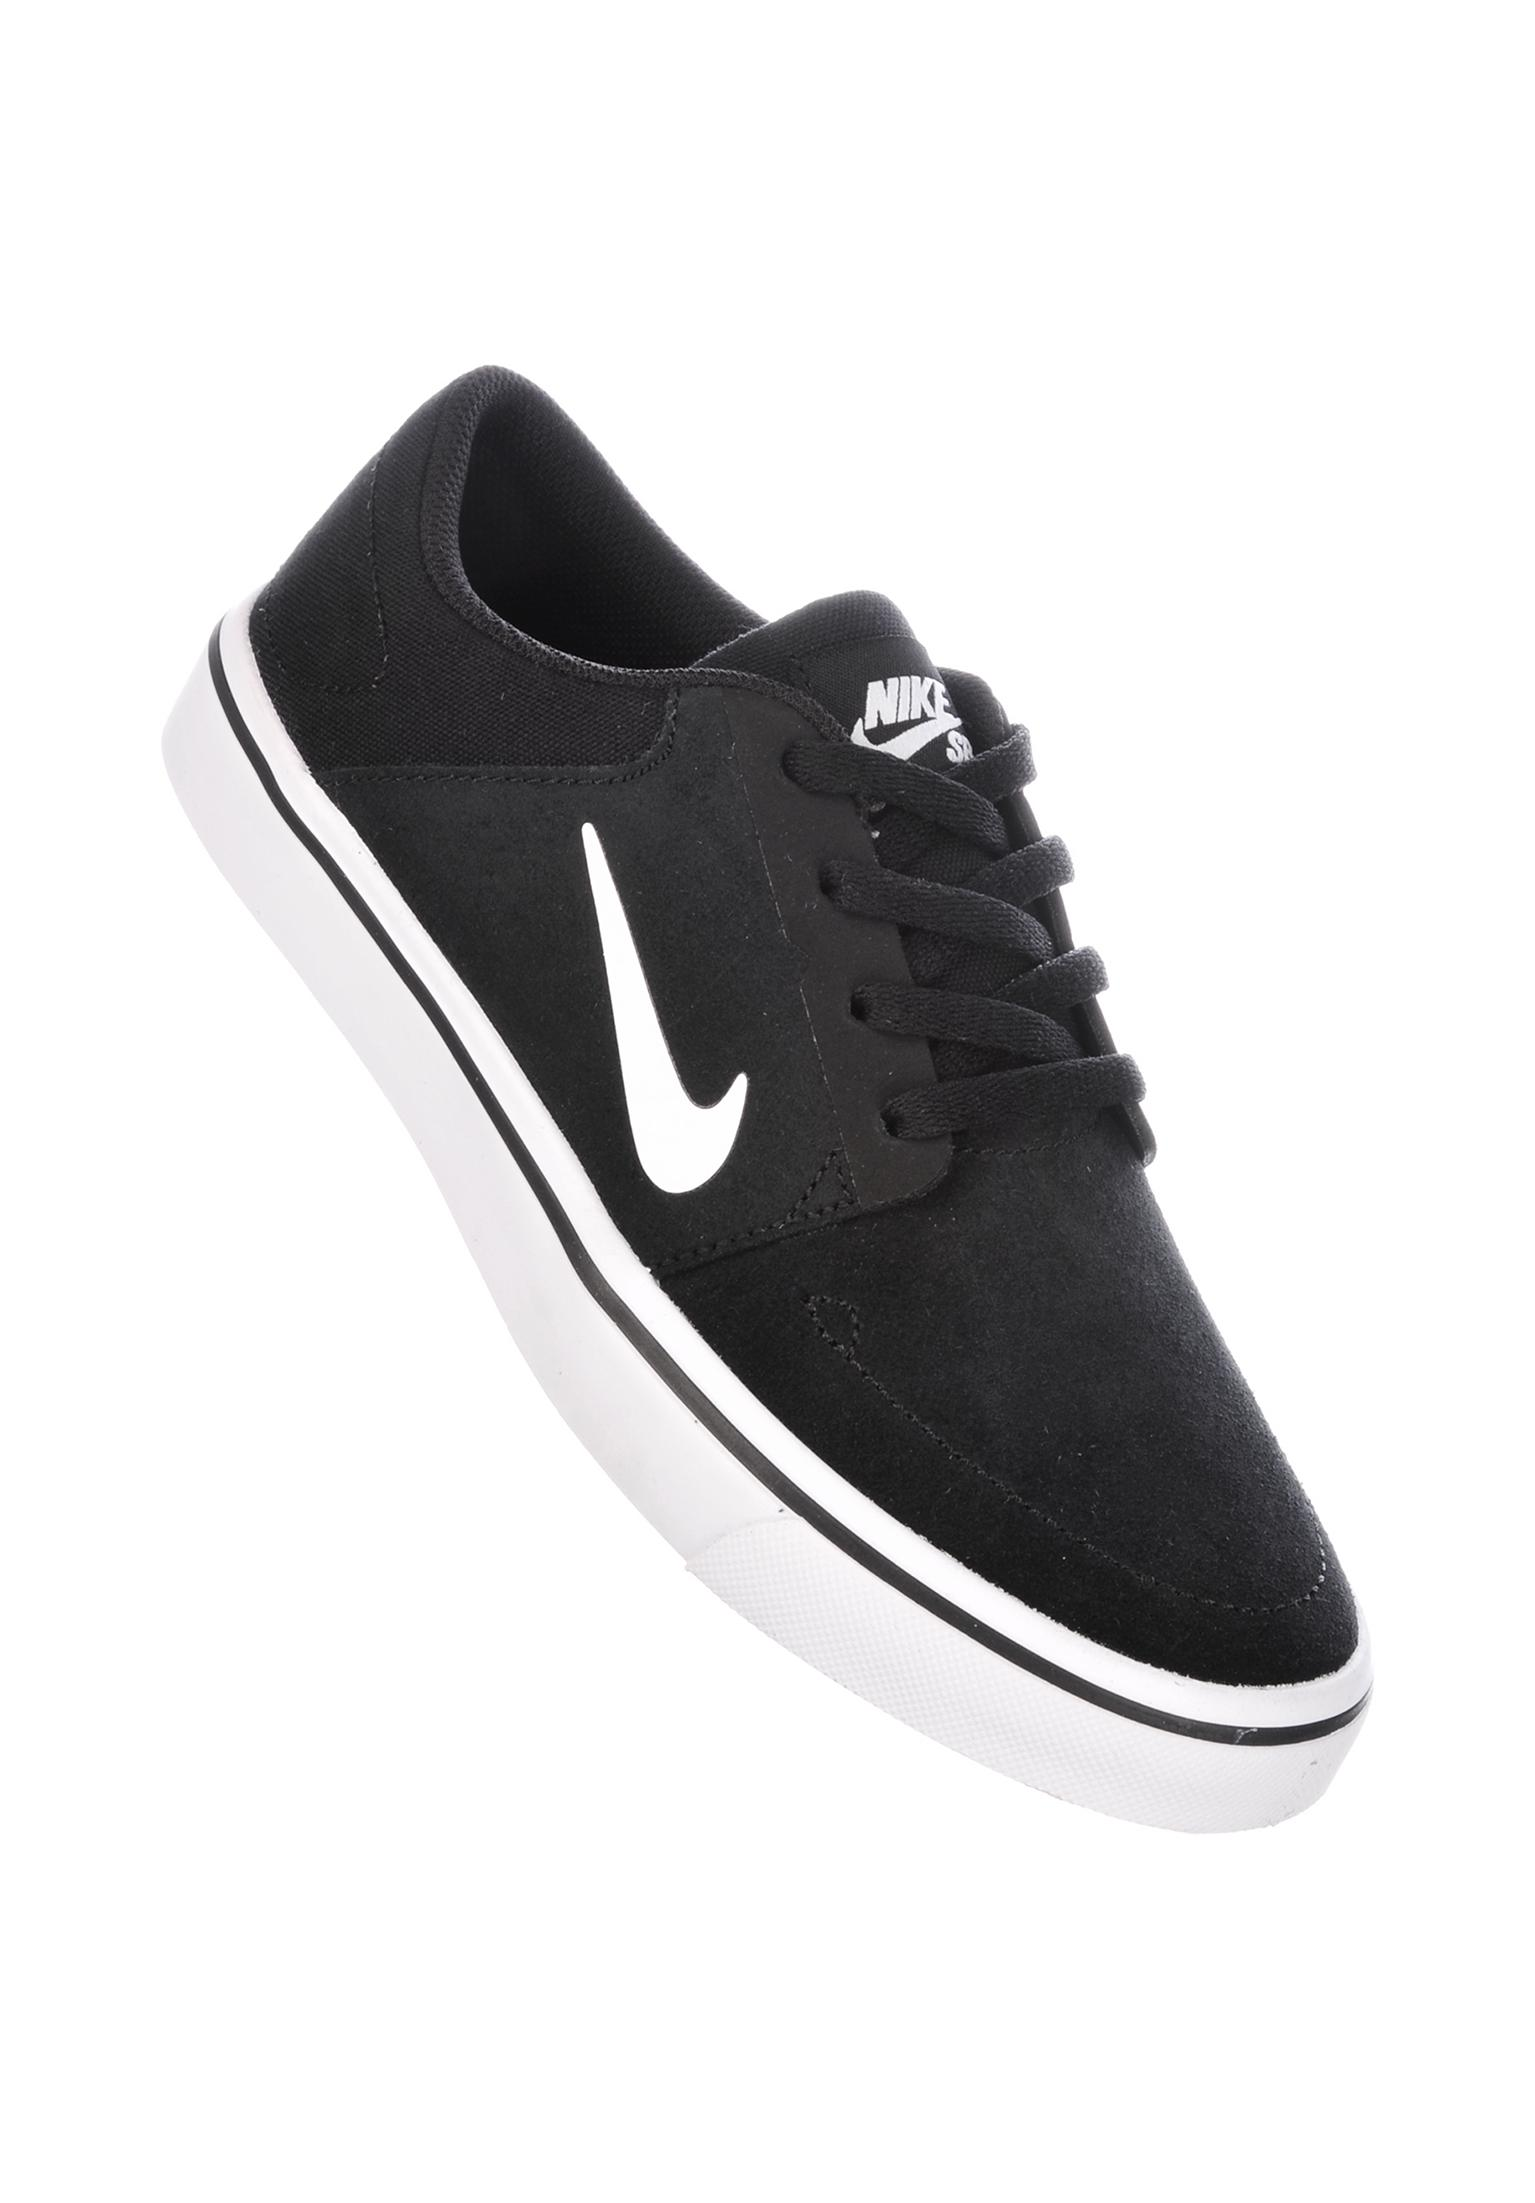 Portmore GS Nike SB All Shoes in black-white for Kids  9f71cb792